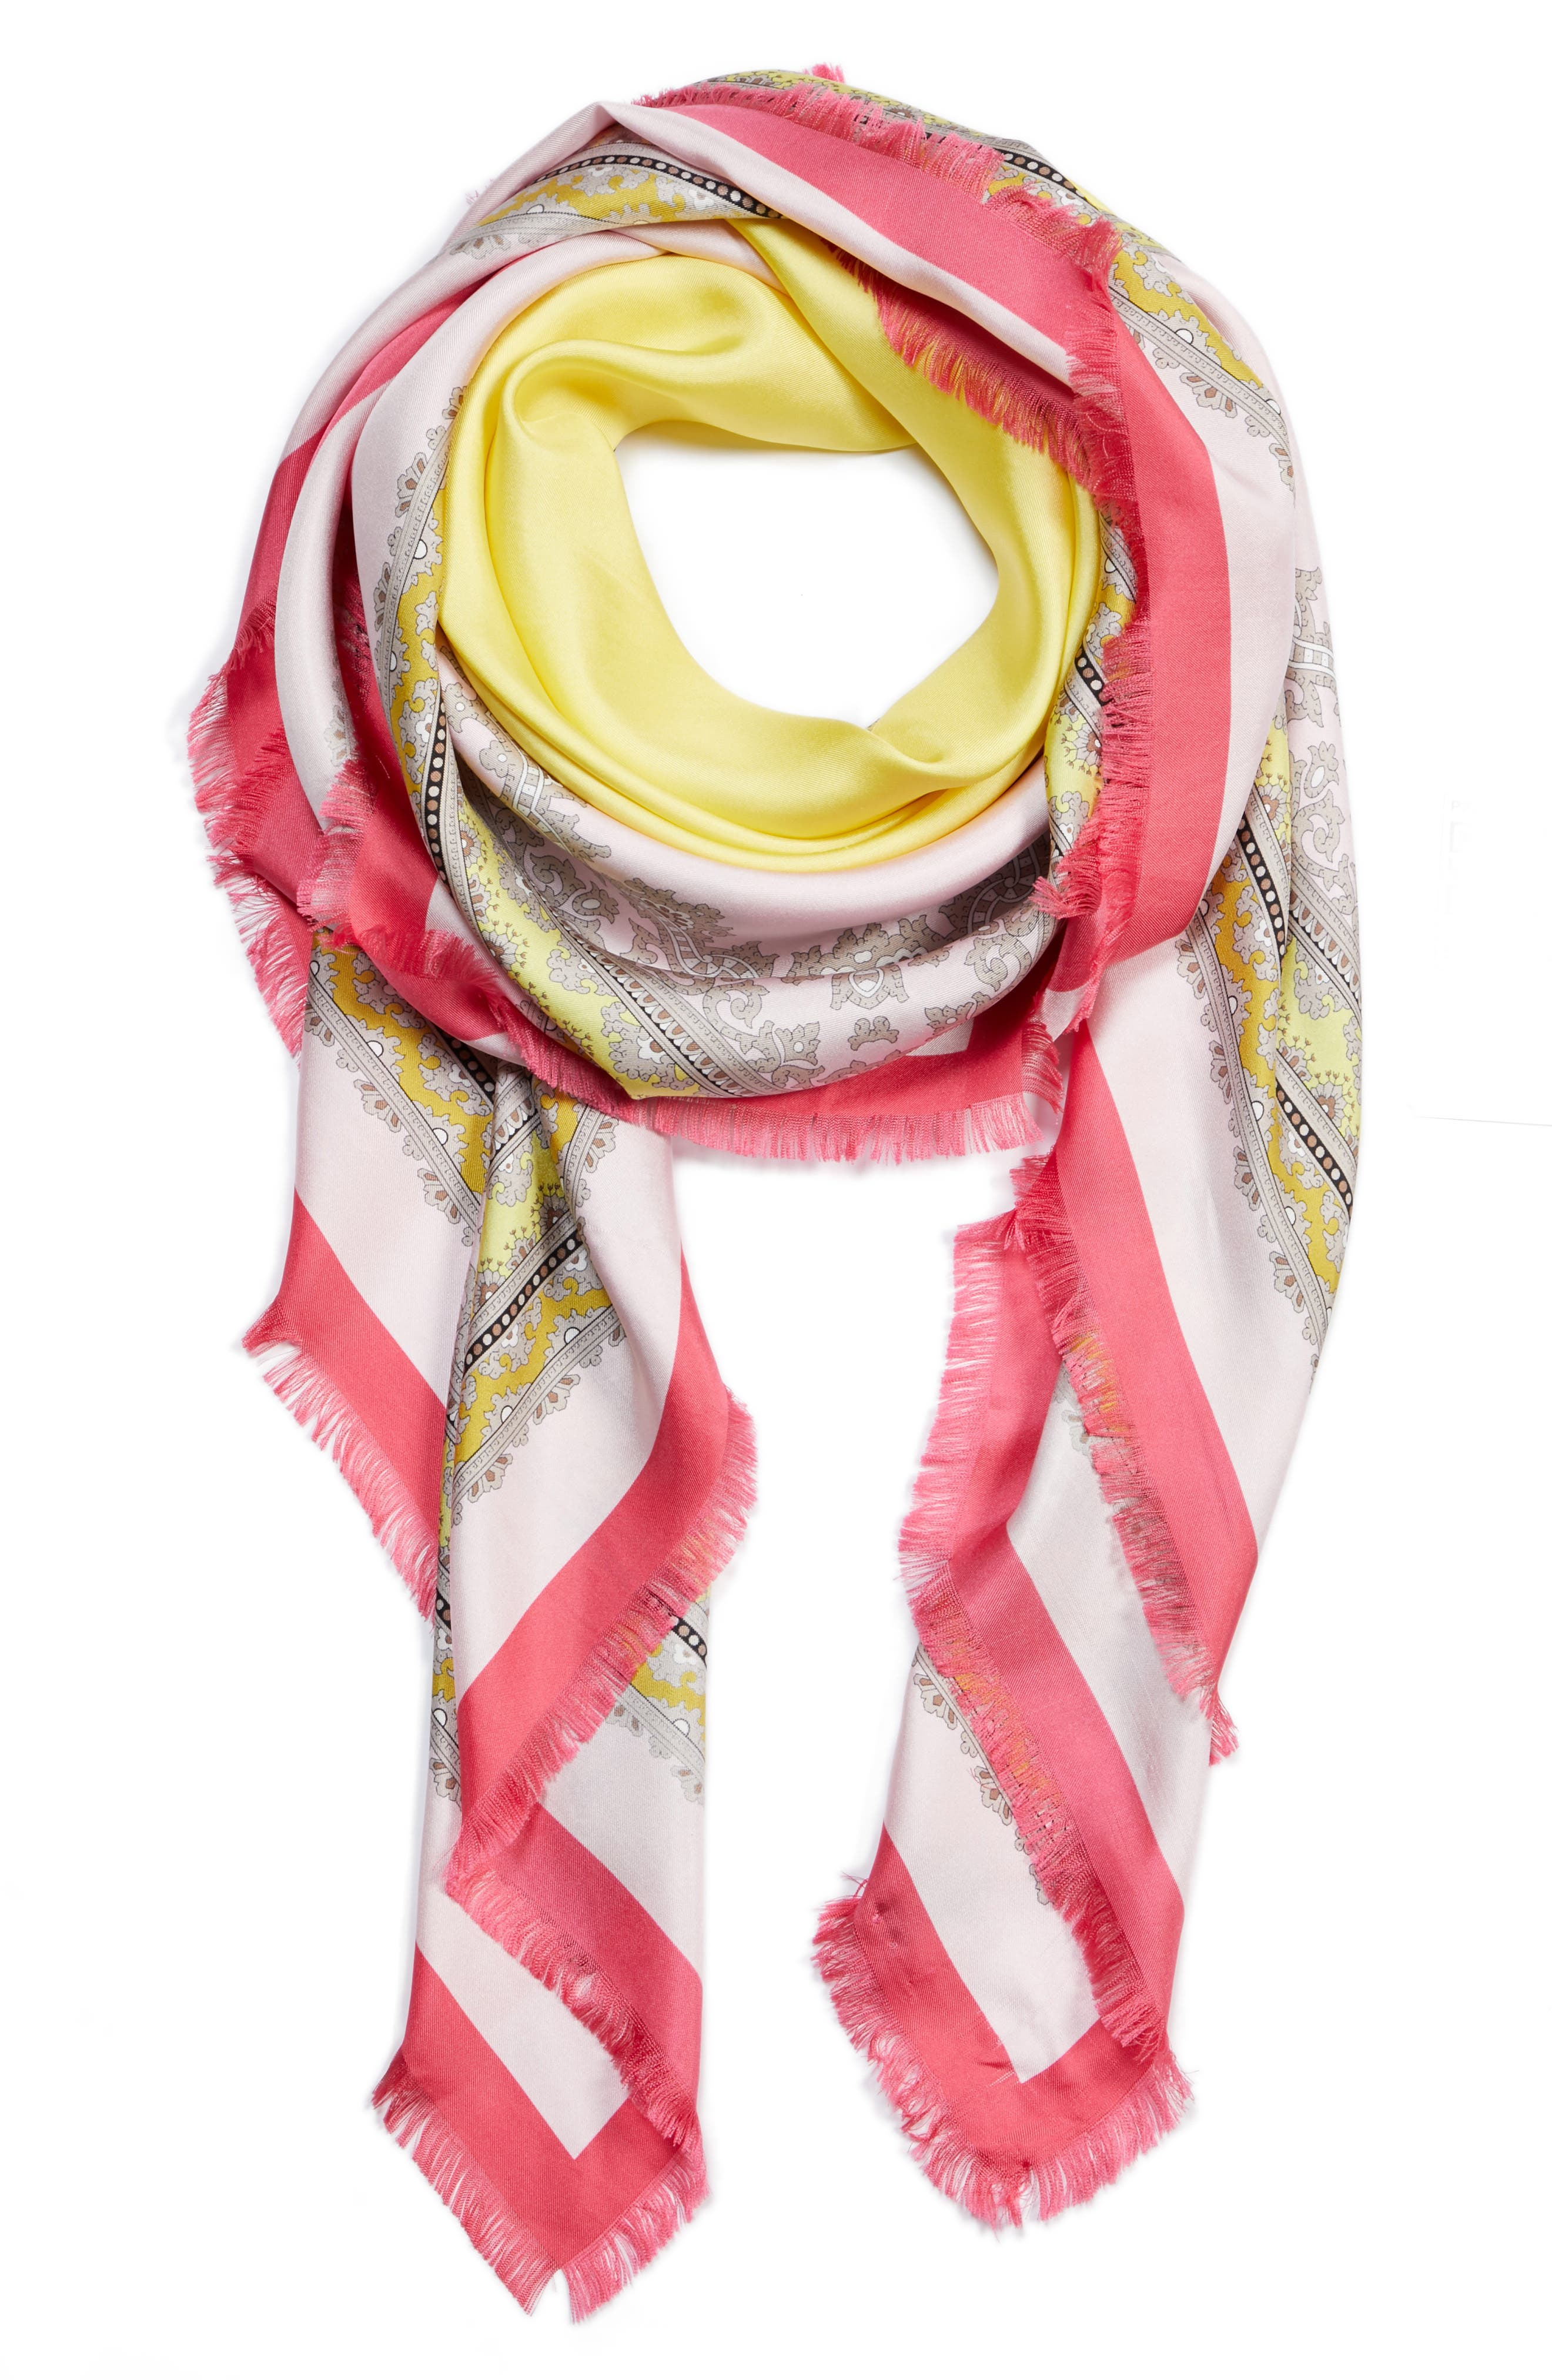 Ginepro Silk Scarf,                             Alternate thumbnail 3, color,                             Pink